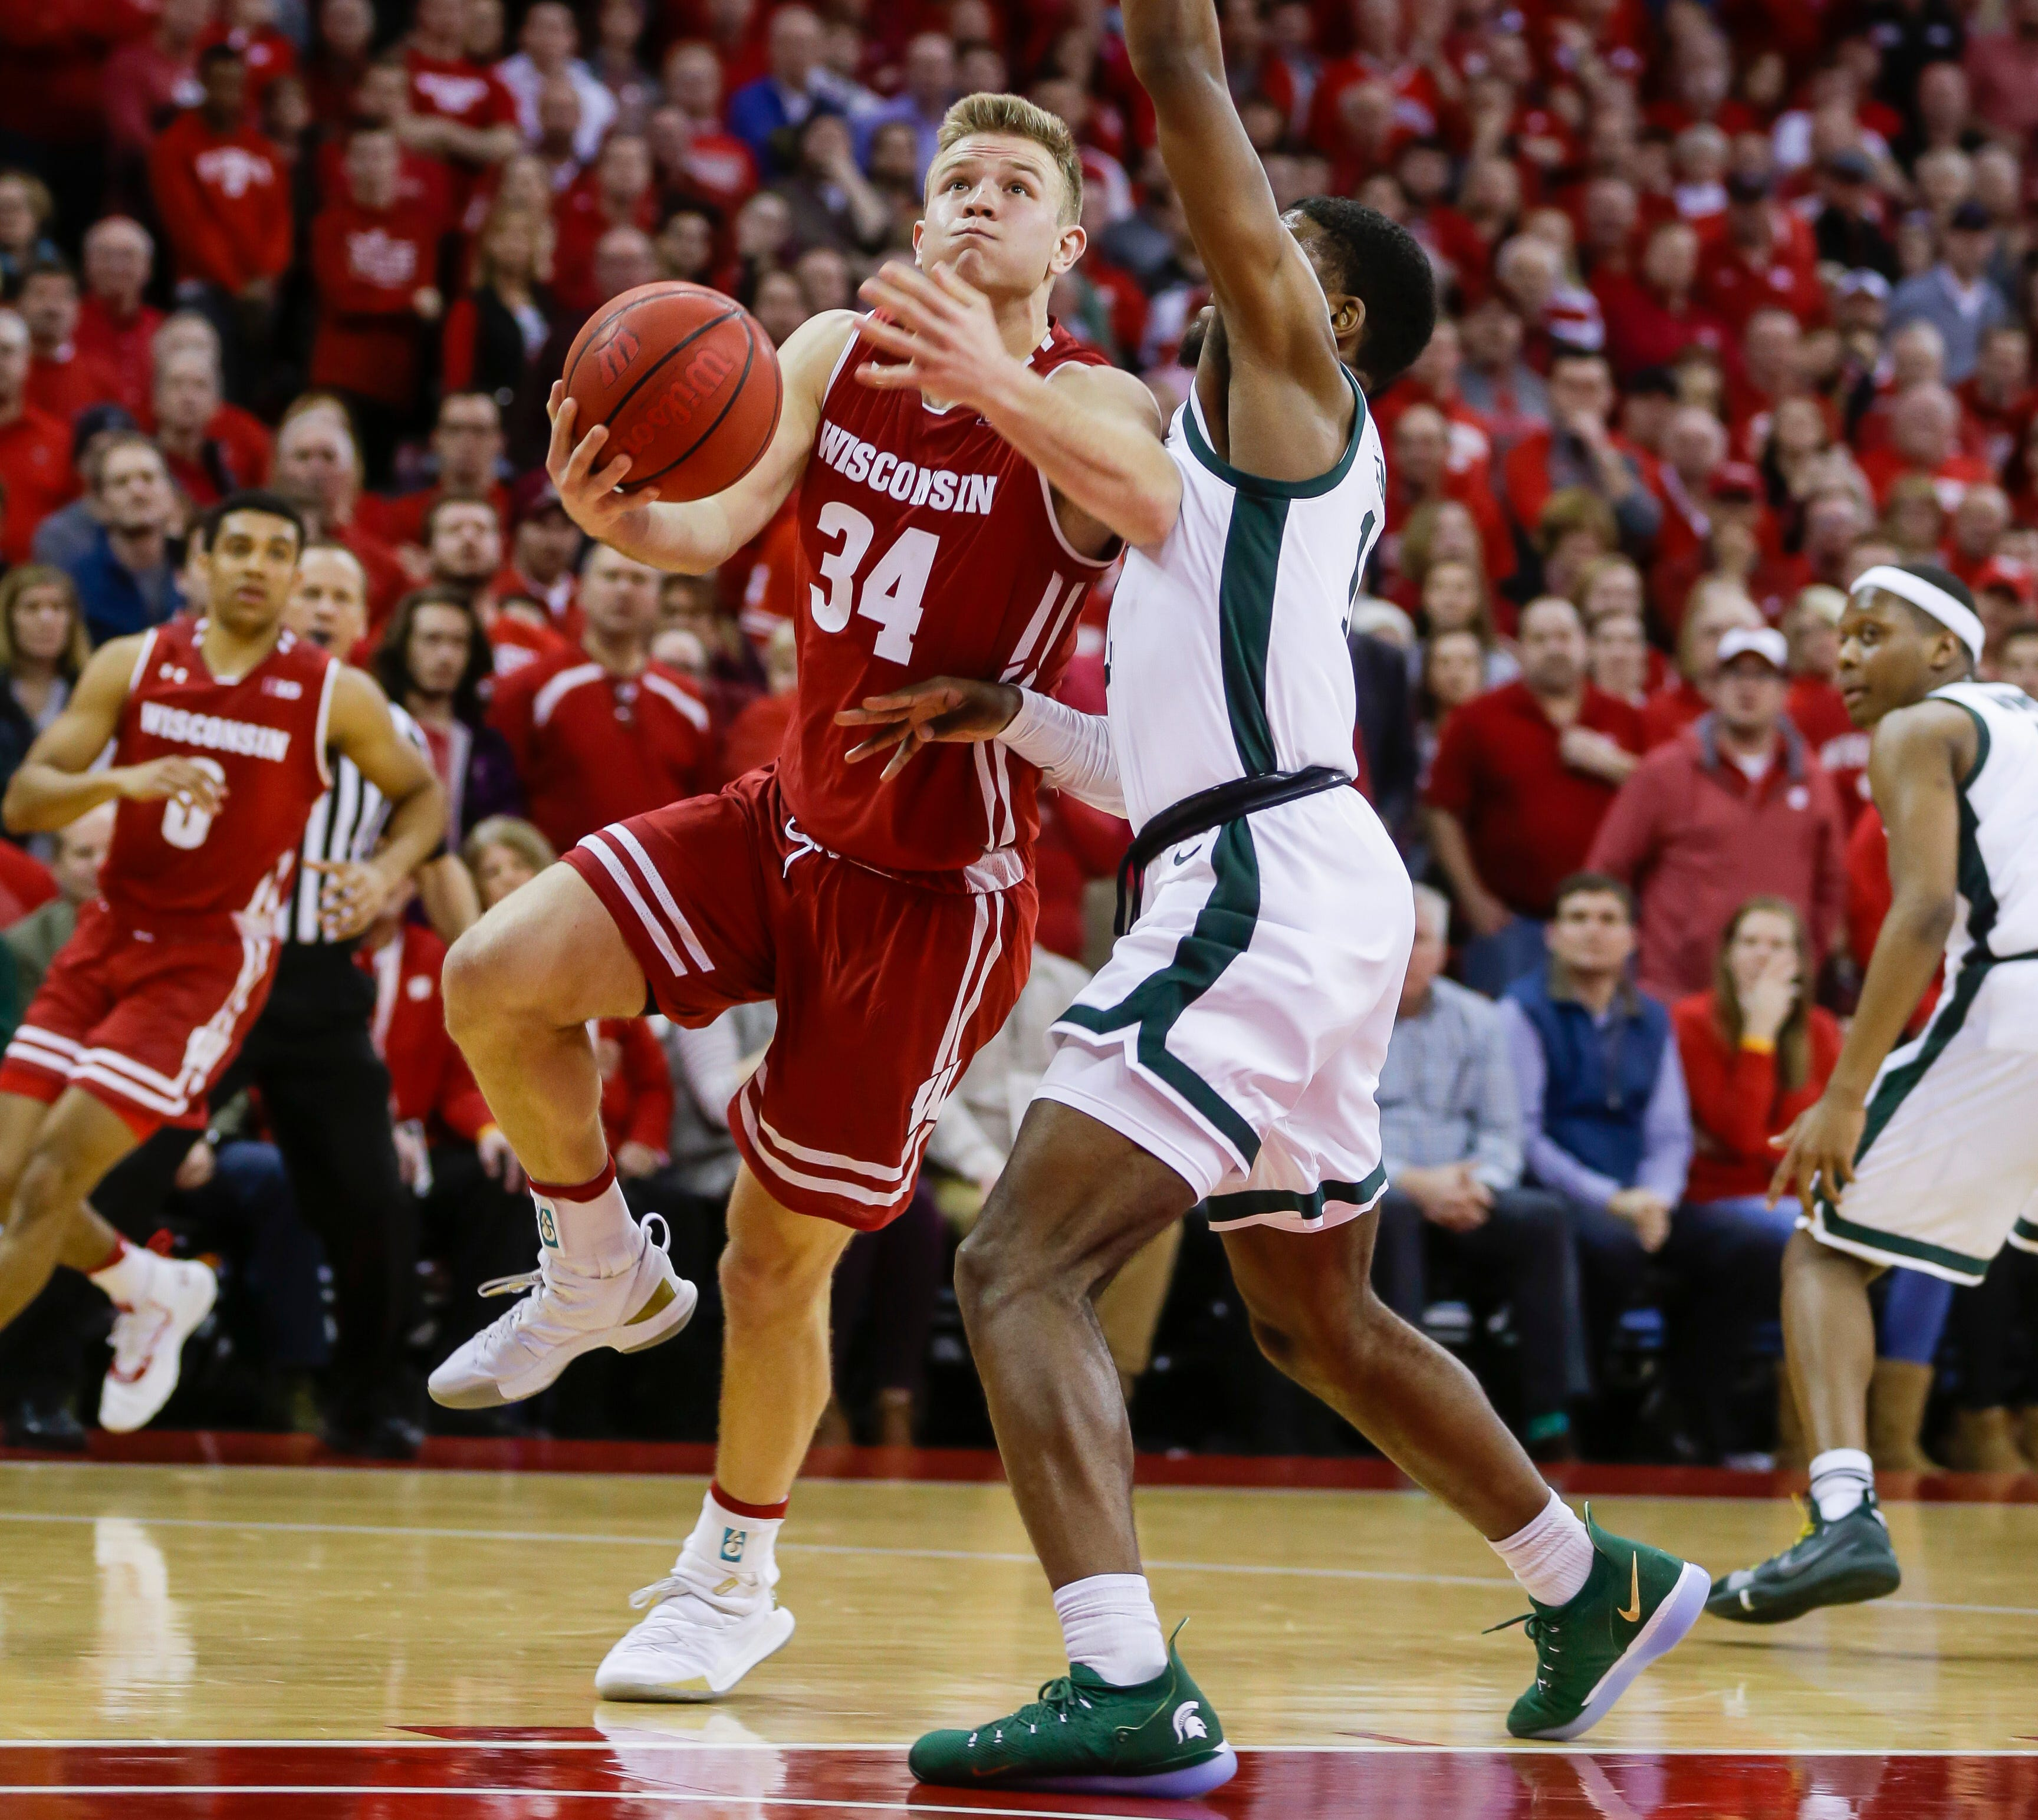 Wisconsin's Brad Davison (34) and Michigan States's Aaron Henry (11) during the second half of an NCAA college basketball game Tuesday, Feb. 12, 2019, in Madison, Wis. Michigan State won 67-59. (AP Photo/Andy Manis) ORG XMIT: WIAM1